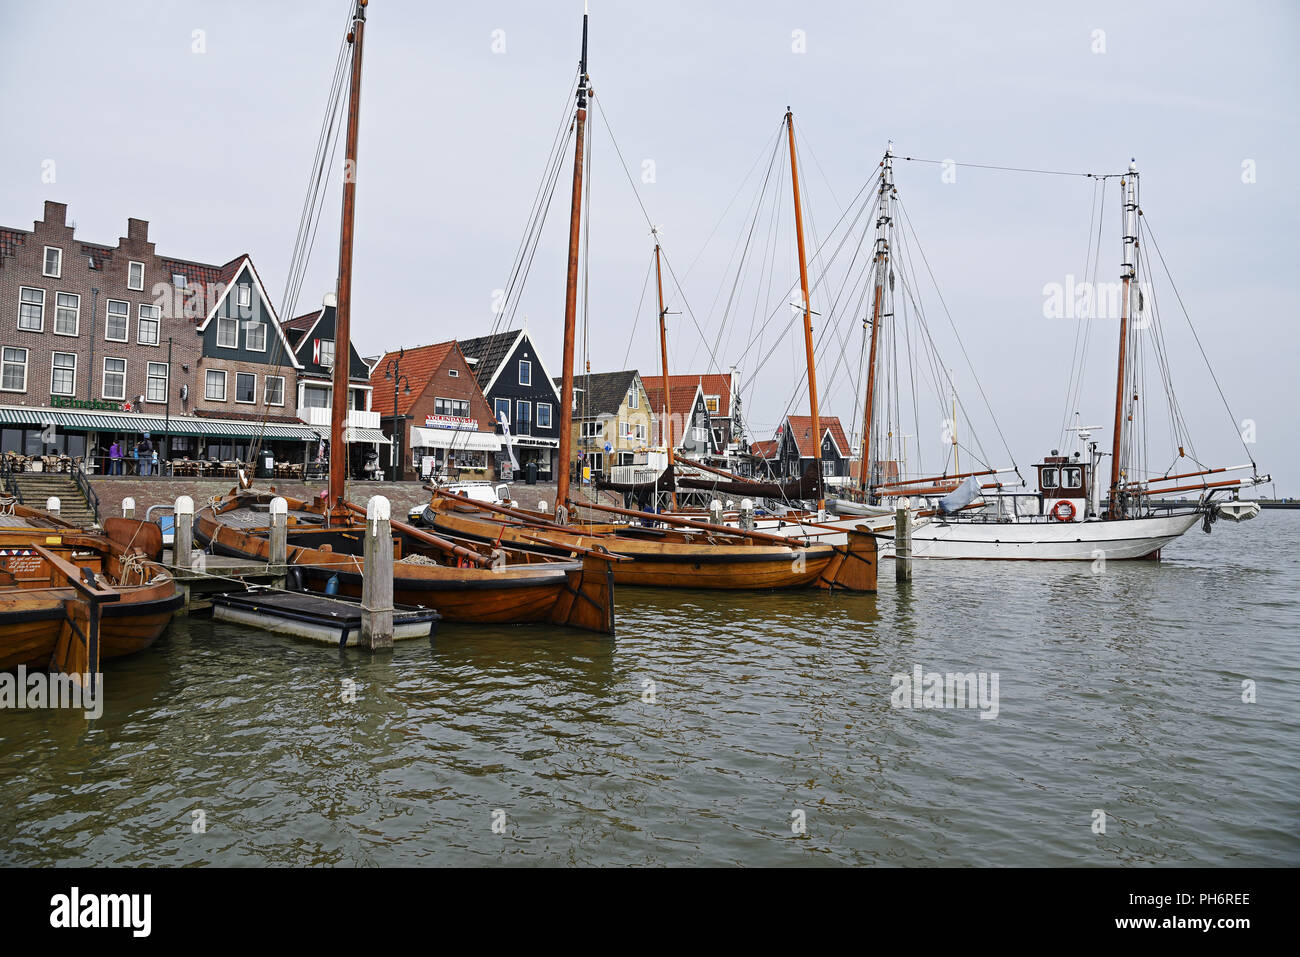 ships, harbour, Volendam, Edam, The Netherlands - Stock Image